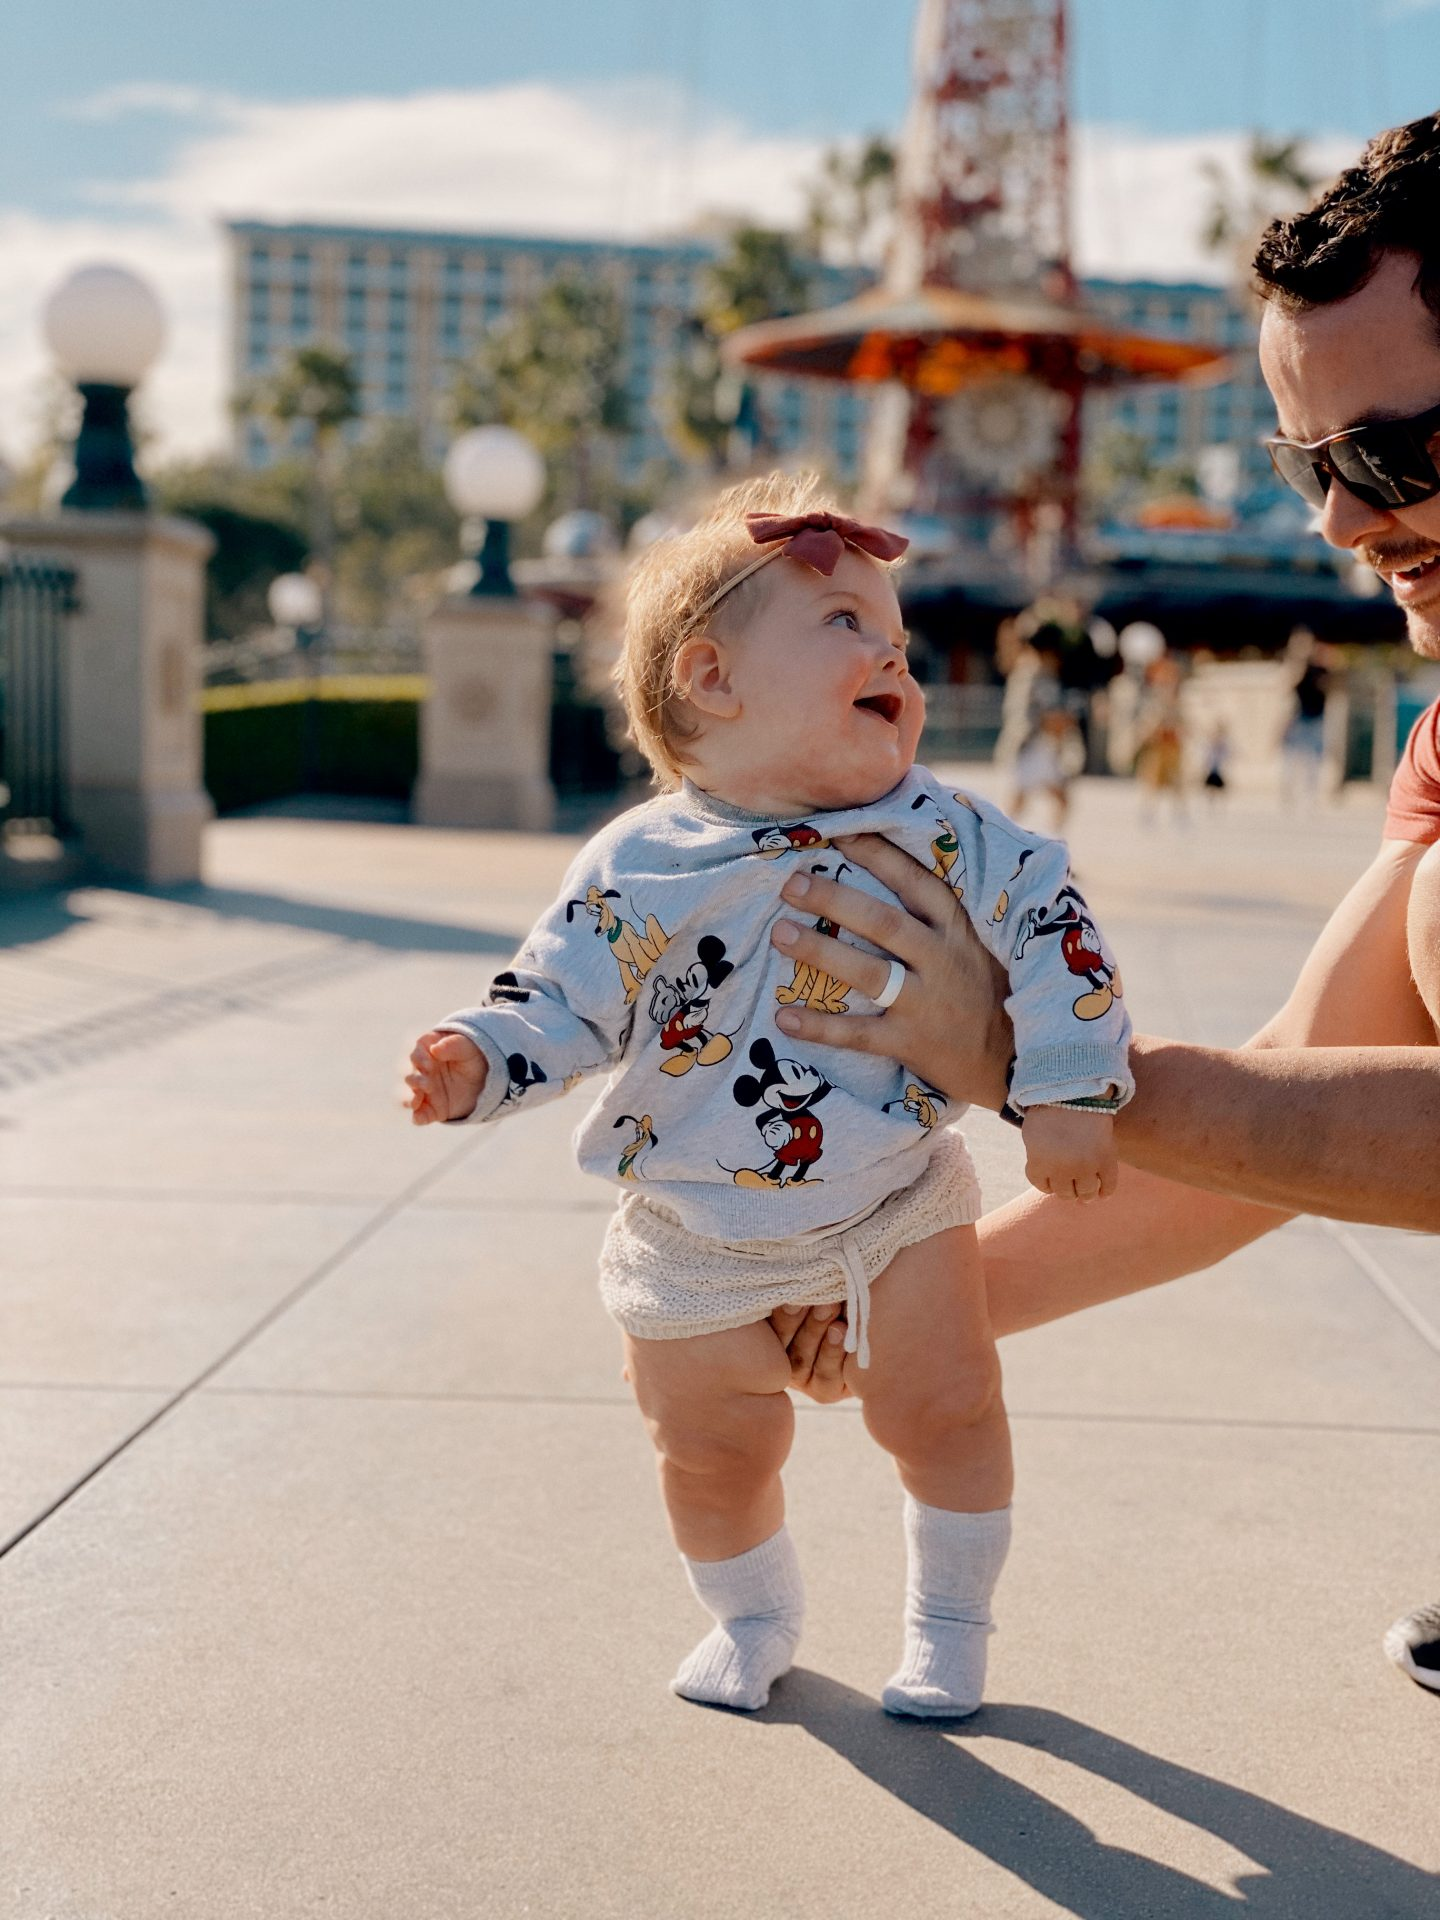 TOP 10 BEST DISNEYLAND TIPS FOR YOUR FAMILY featured by top San Diego blog, Navy Grace | Disneyland Tips by popular San Diego lifestyle blog, Navy Grace: image of a dad holding his baby girl who is wearing knit shorts and a grey Mickey Mouse t-shirt.